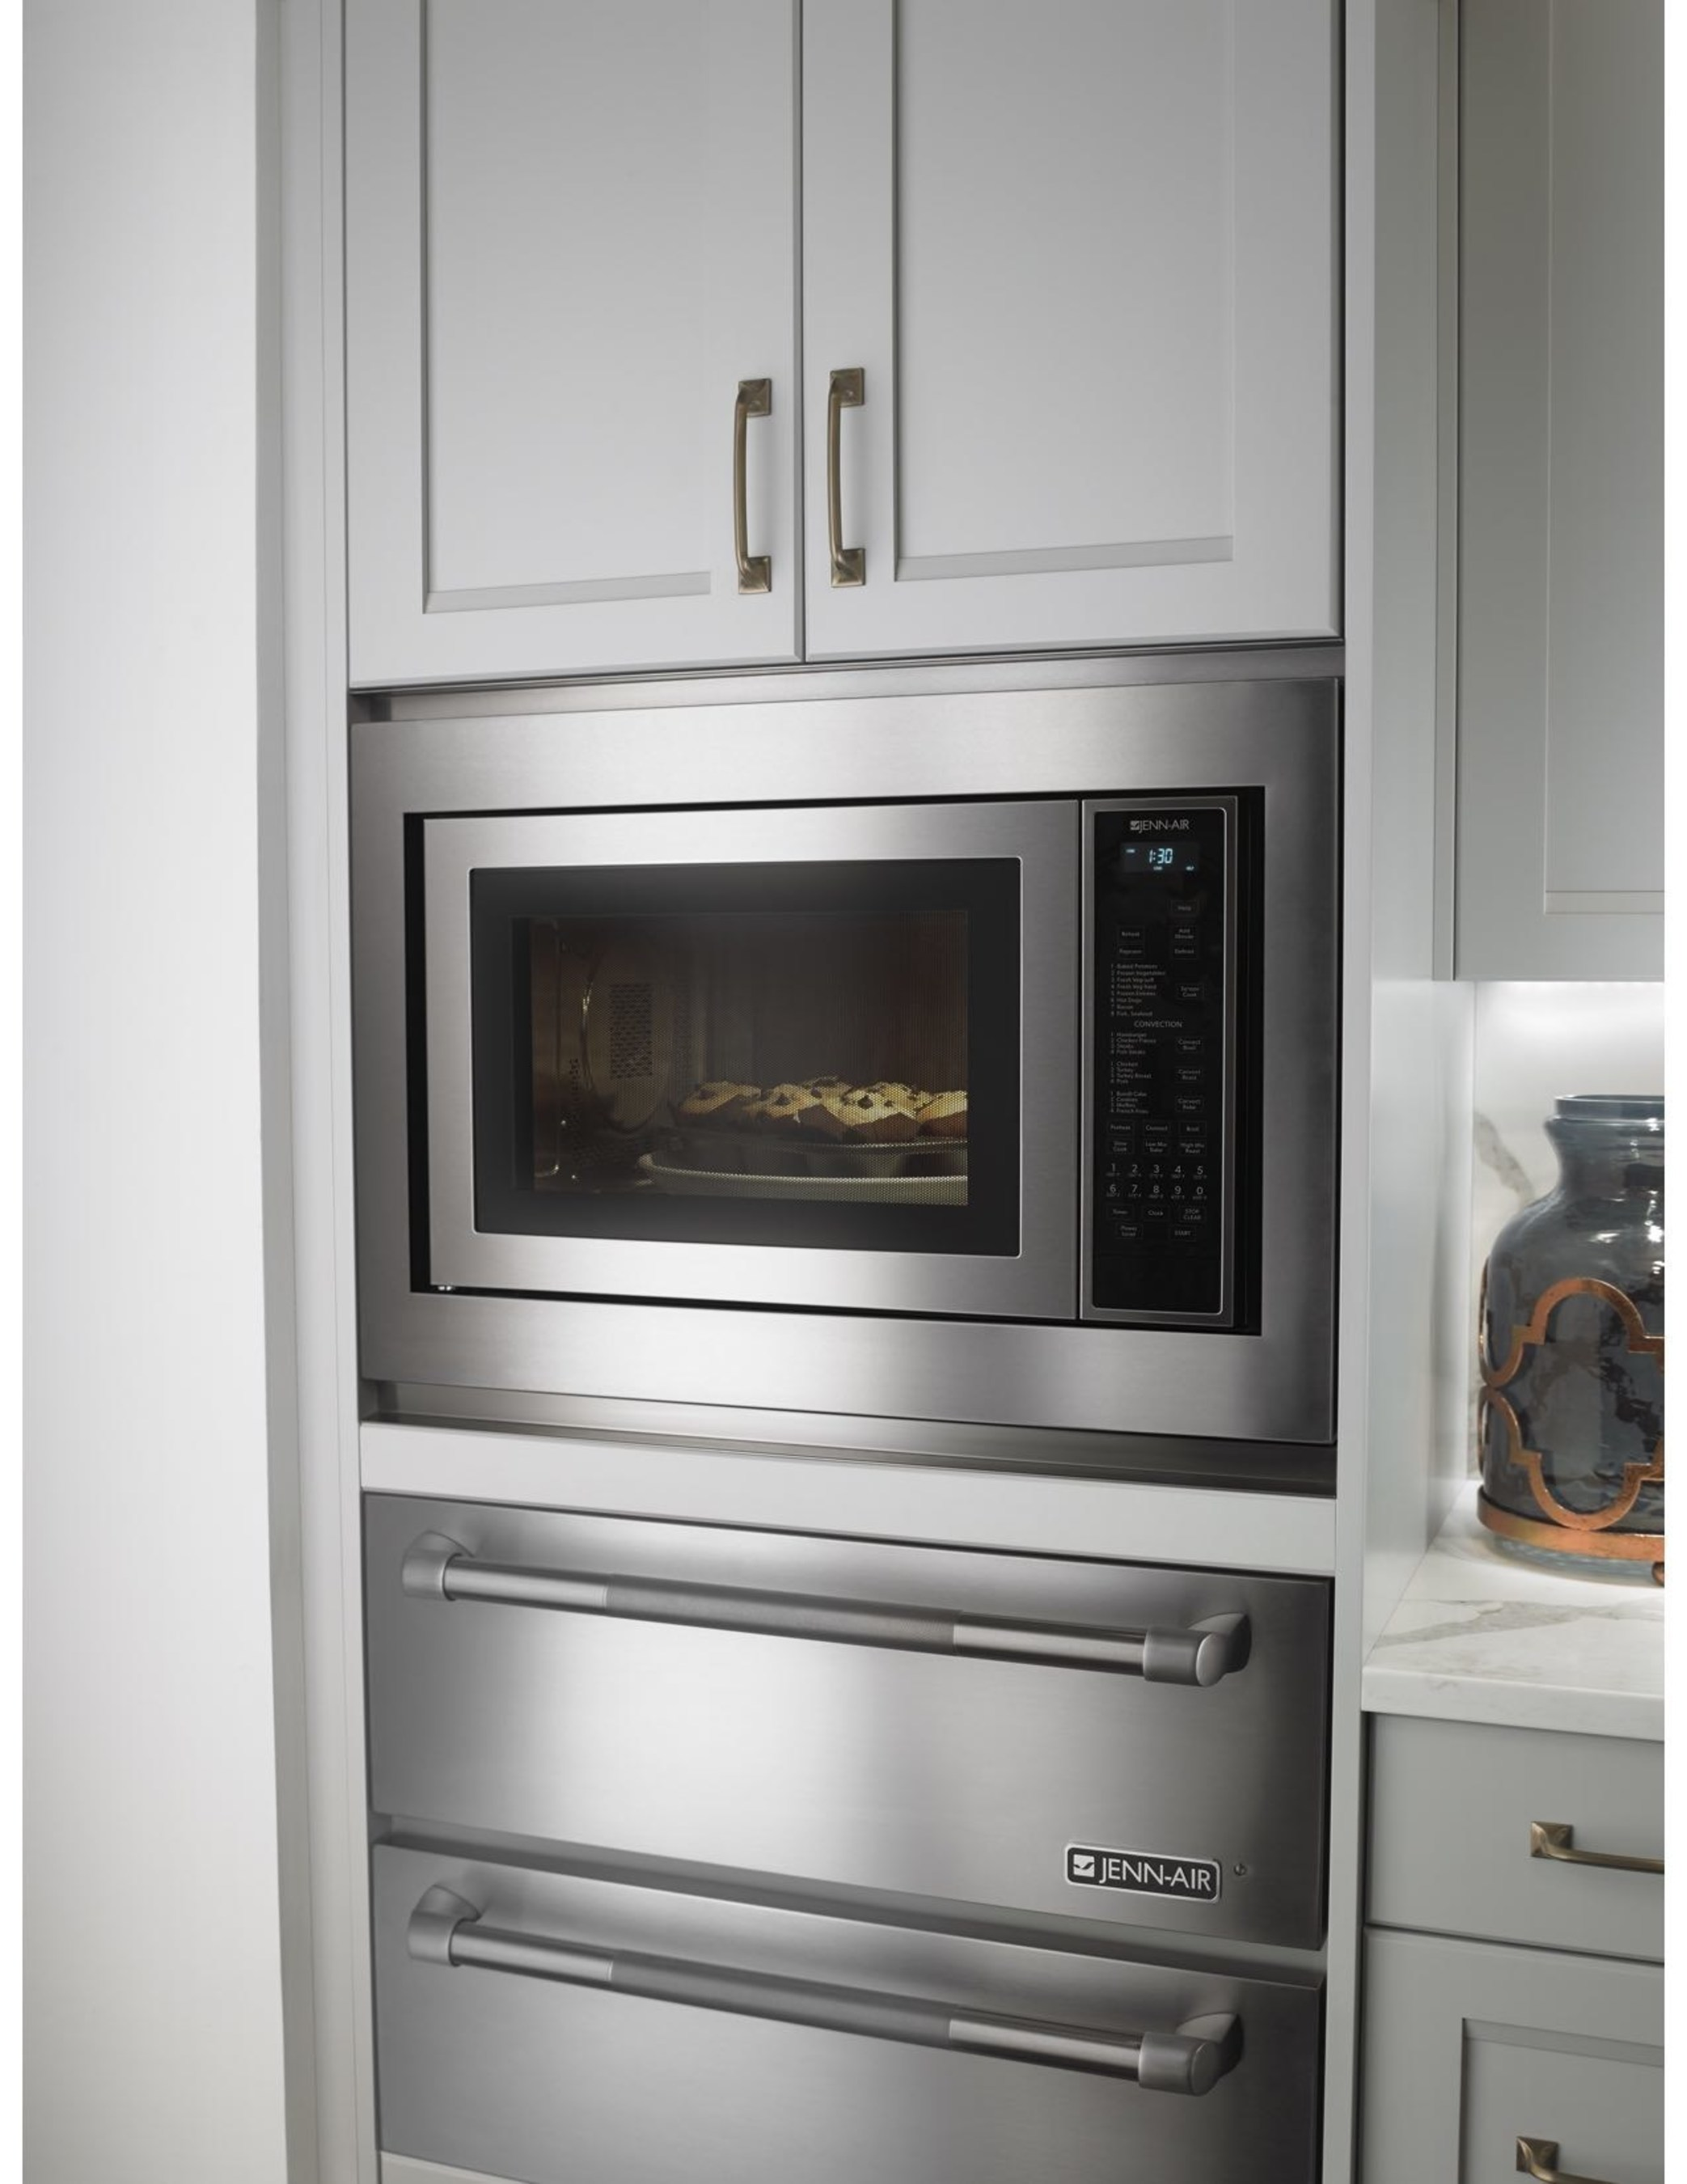 New Jenn-Air(R) Built-In/Countertop Convection Microwave Oven